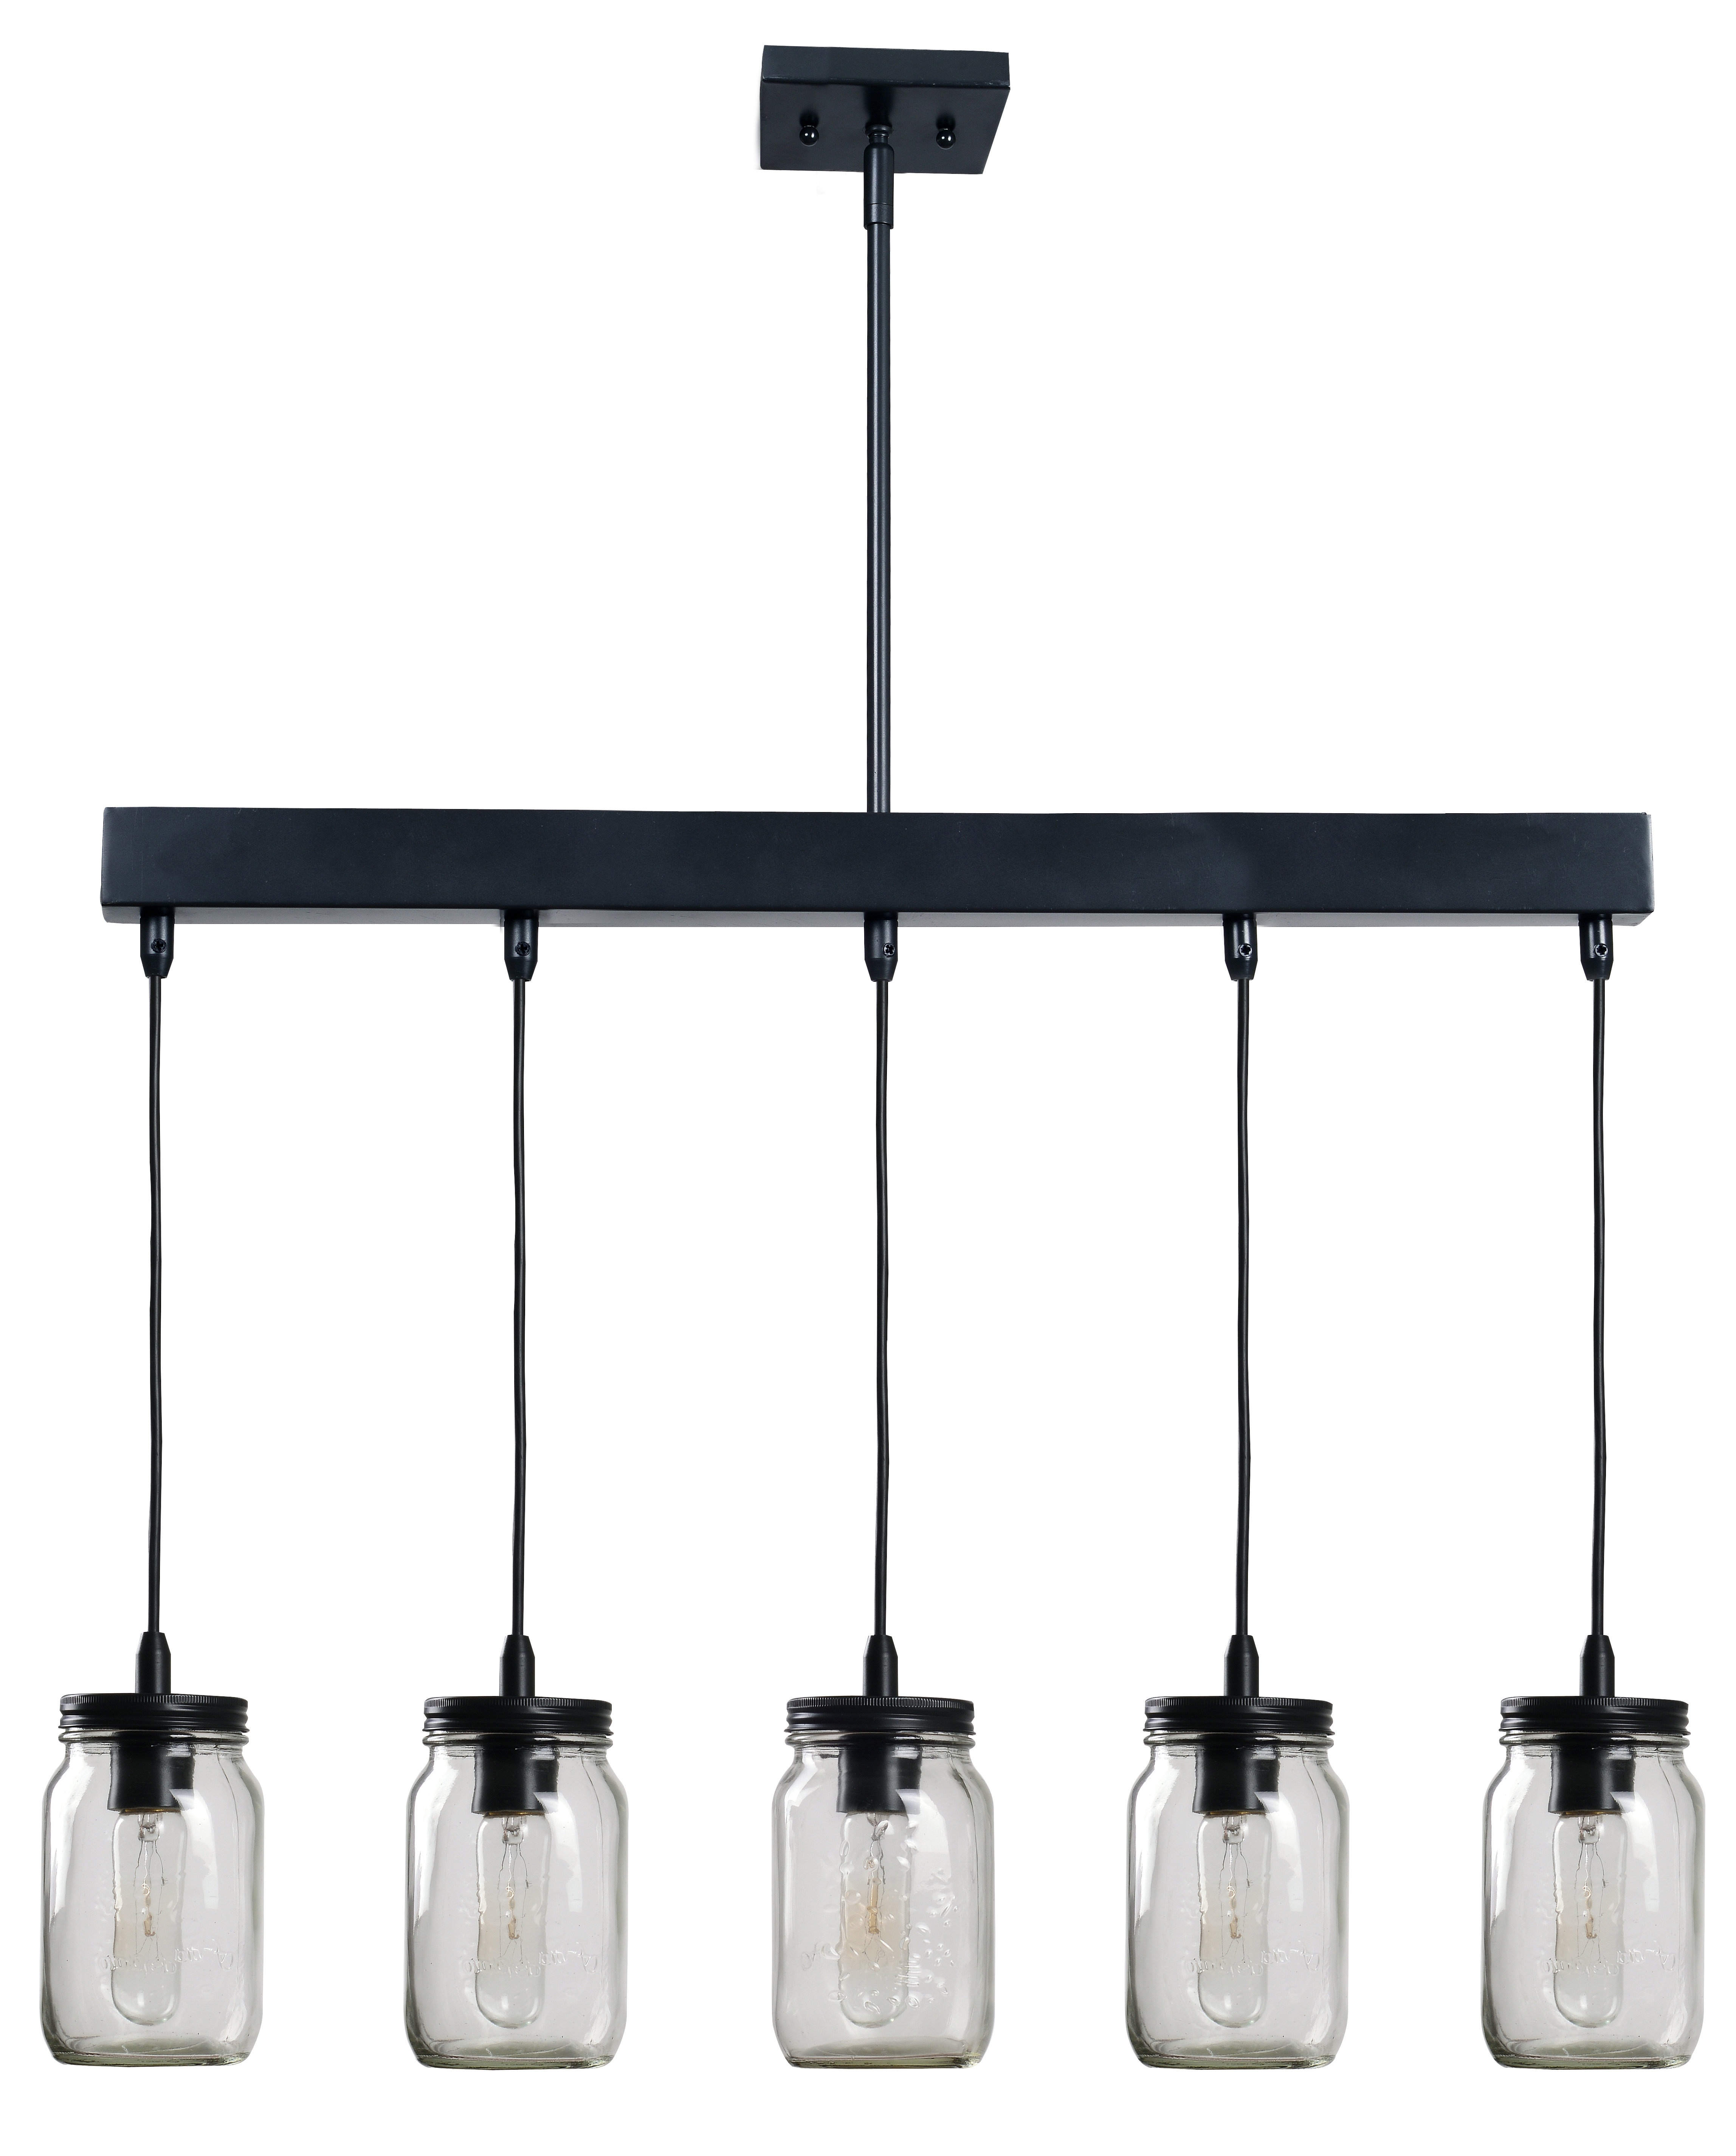 Sousa 4 Light Kitchen Island Linear Pendants Inside 2019 Wednesbury 5 Light Kitchen Island Jar Pendant (View 11 of 20)